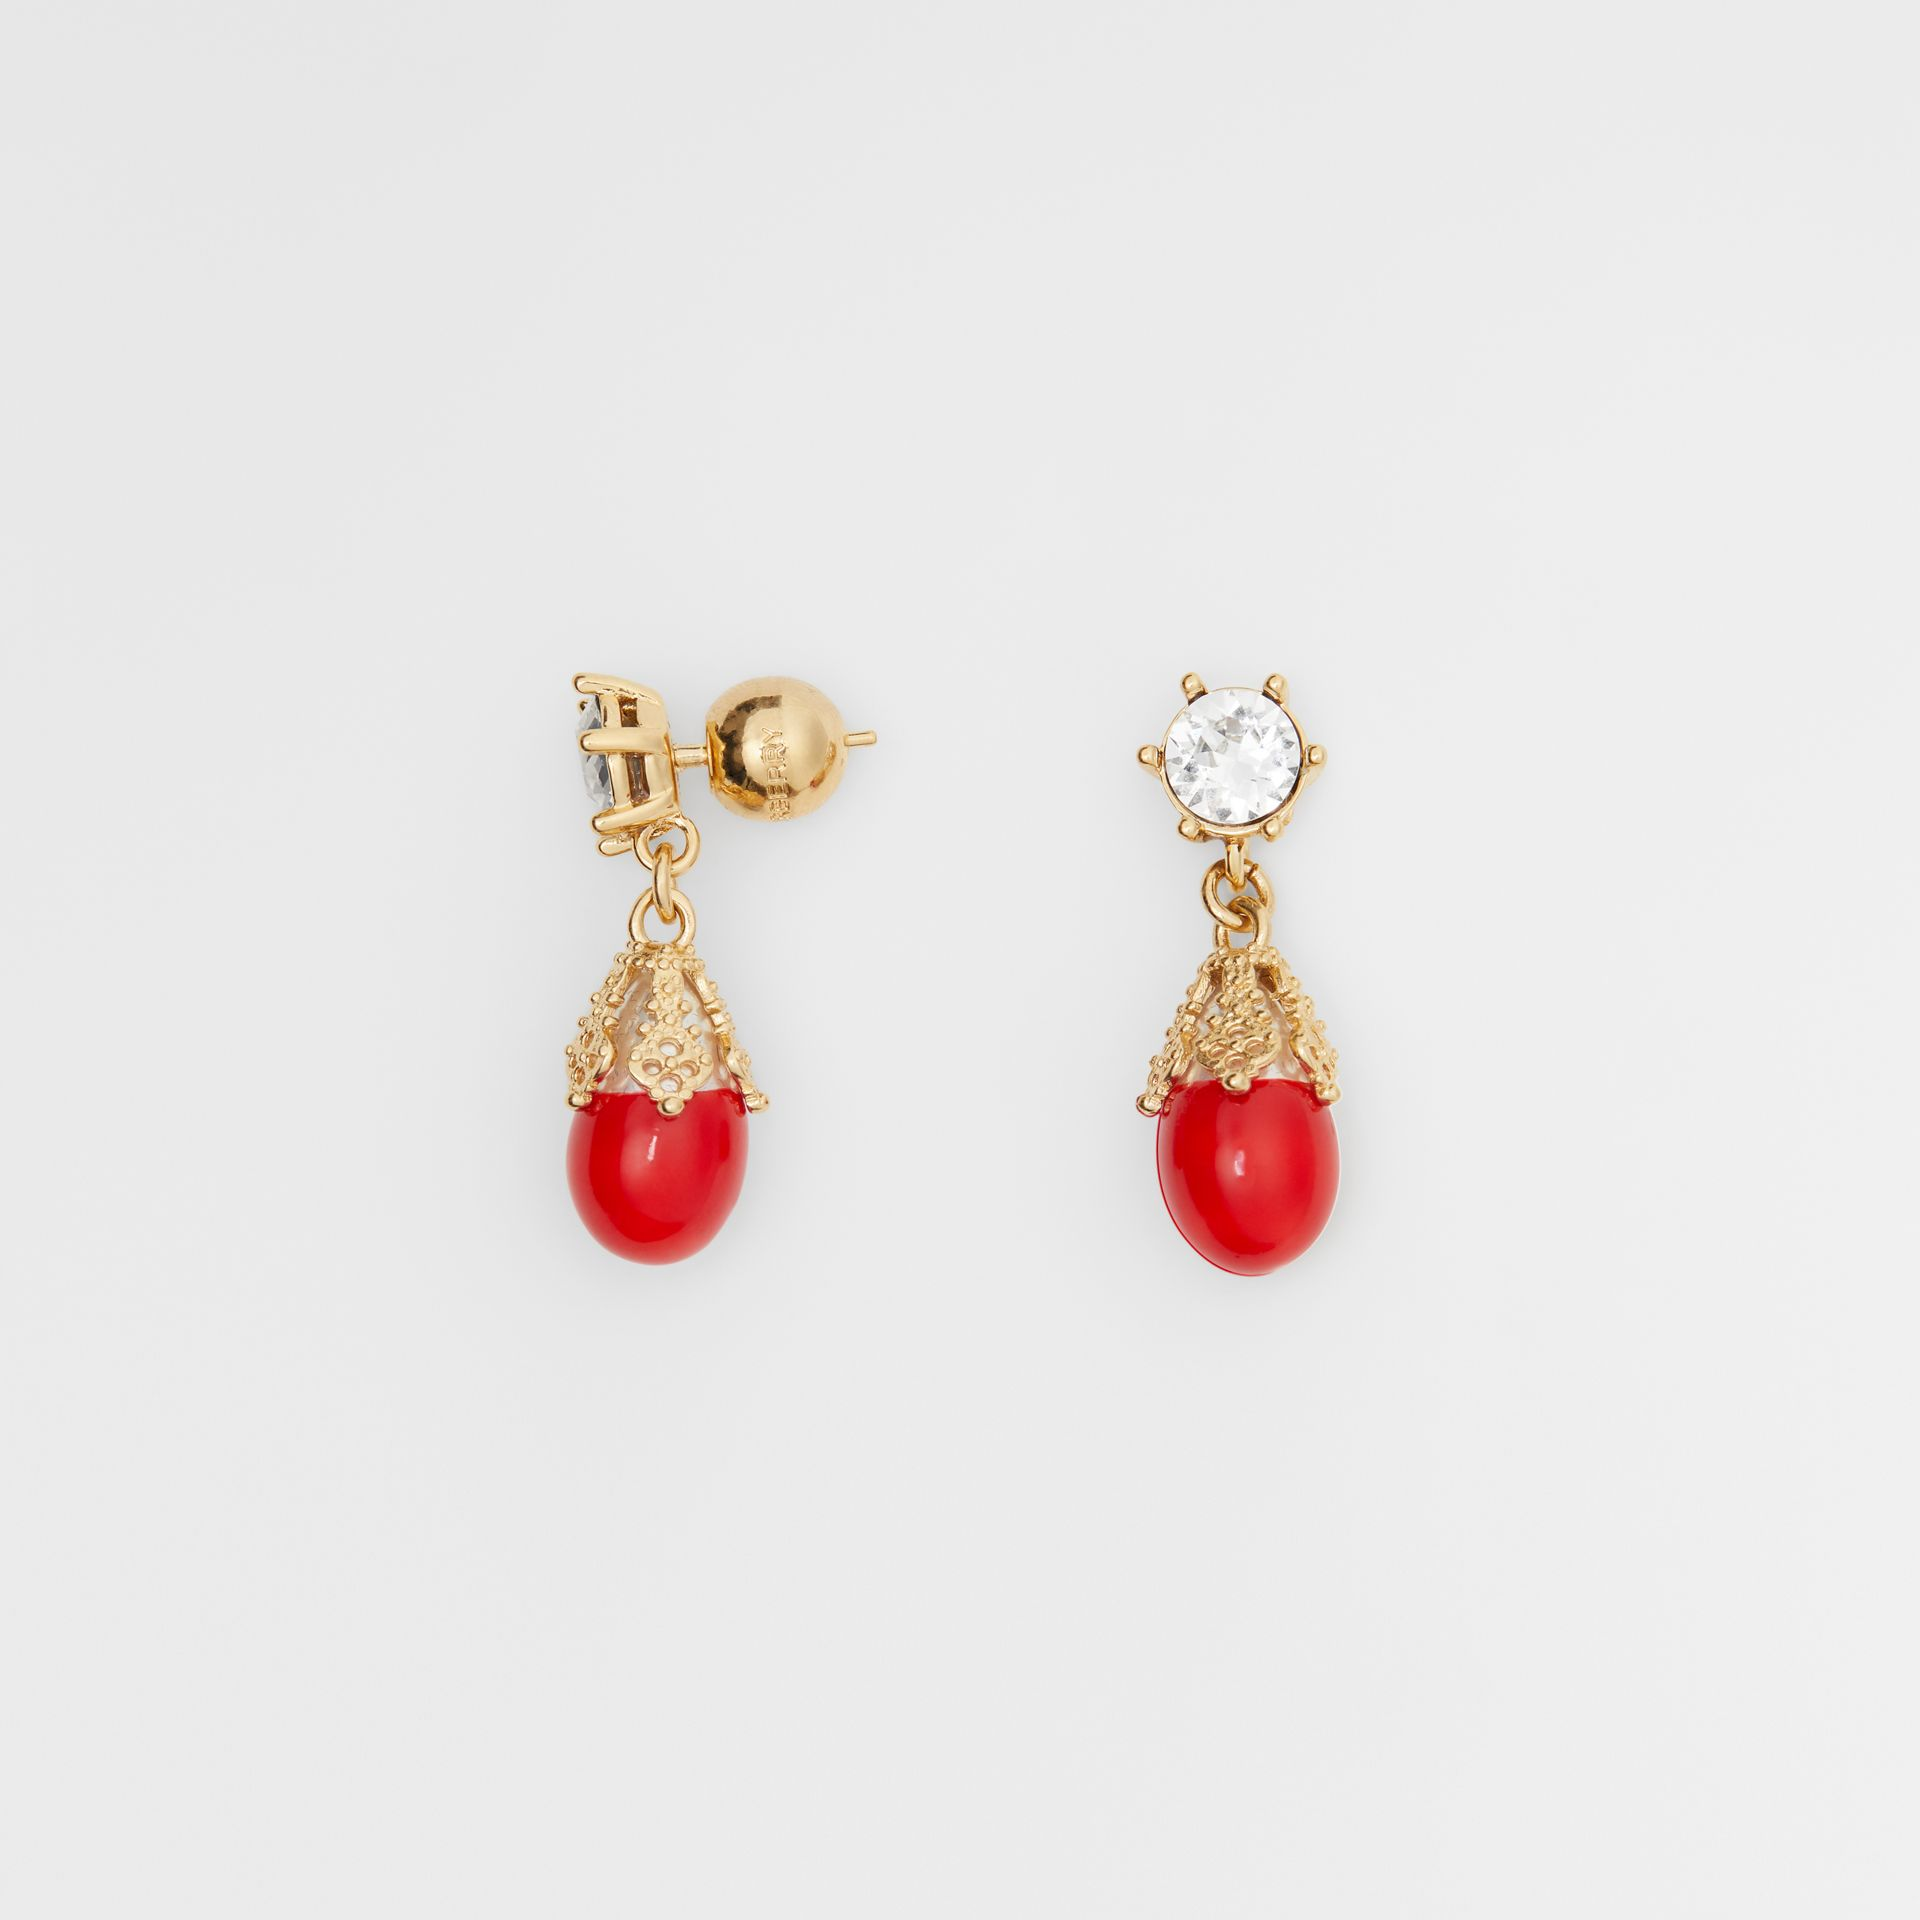 Gold-plated Faux Pearl Charm Earrings in Bright Red/light - Women | Burberry United Kingdom - gallery image 3